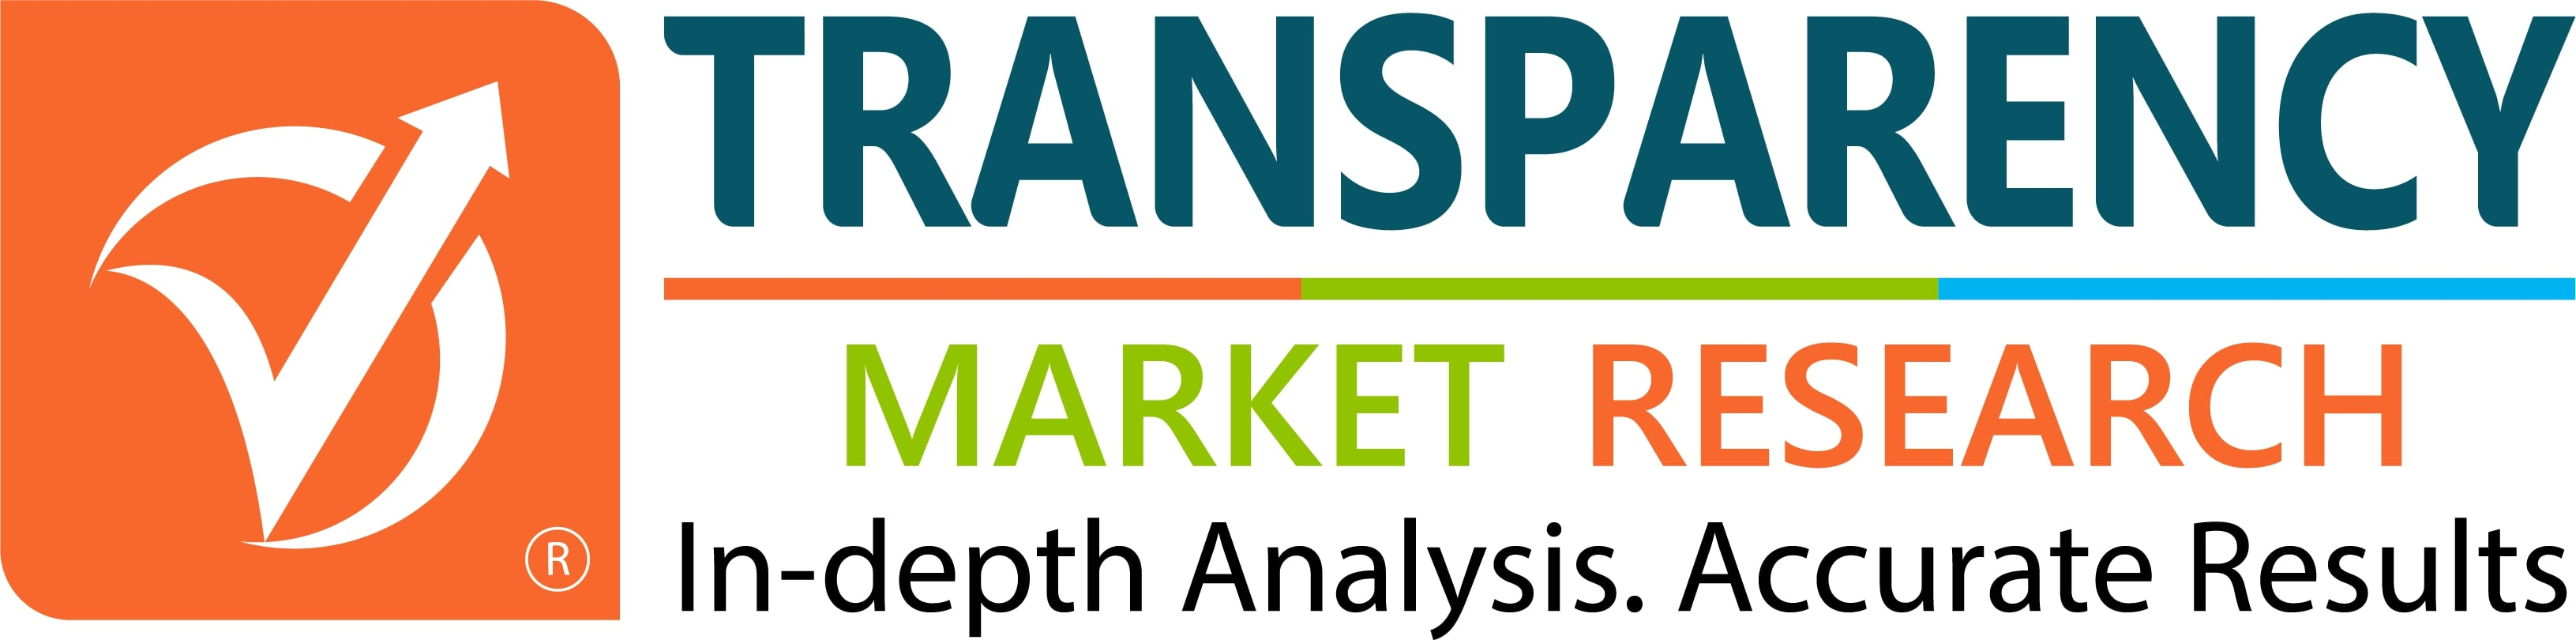 Sepsis Treatment Market Estimated to Attain Revenues Worth US$ 1.6 Bn by 2031